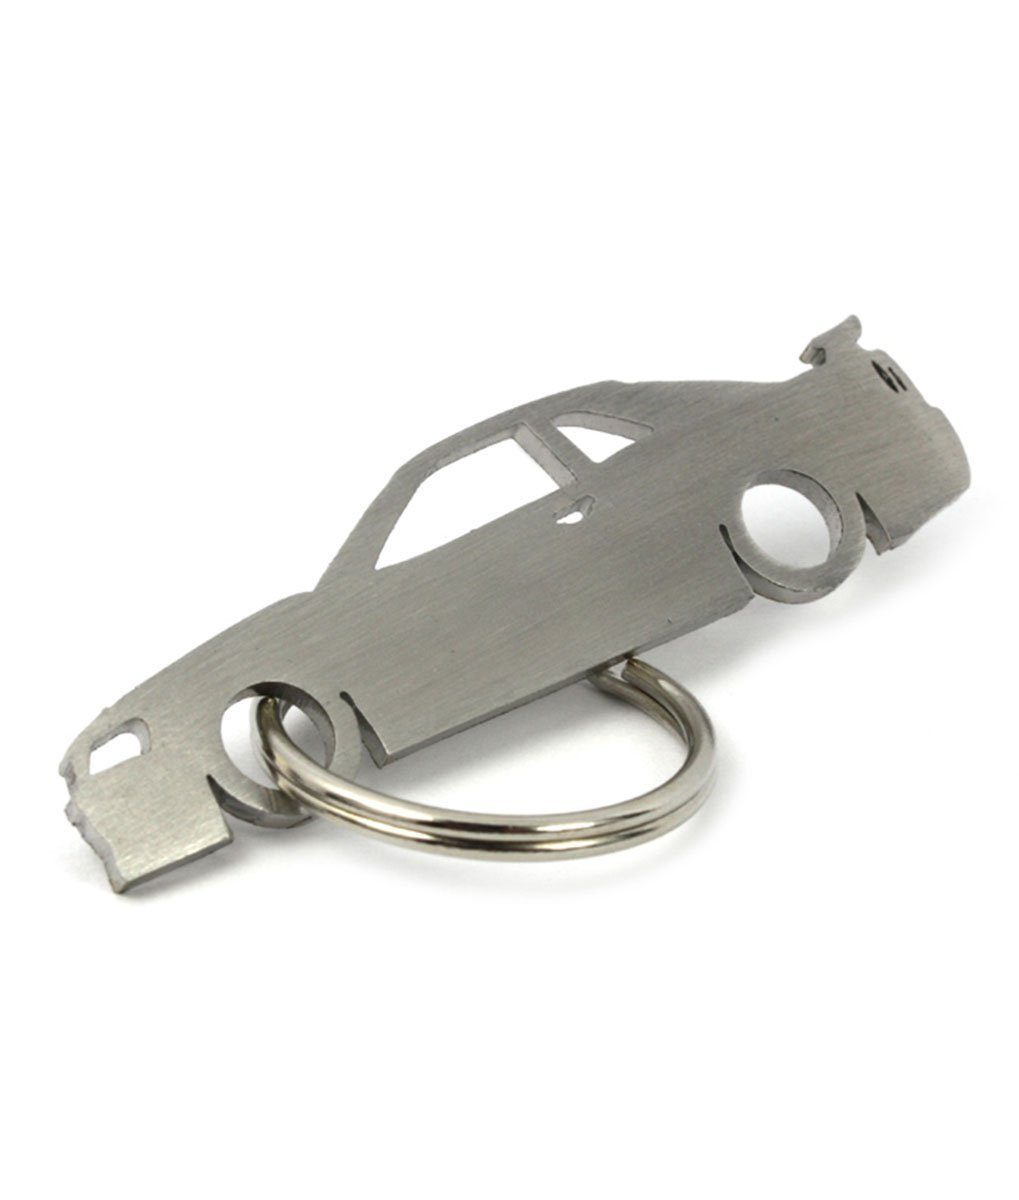 Key Ring - Nissan Skyline R34 Key Ring